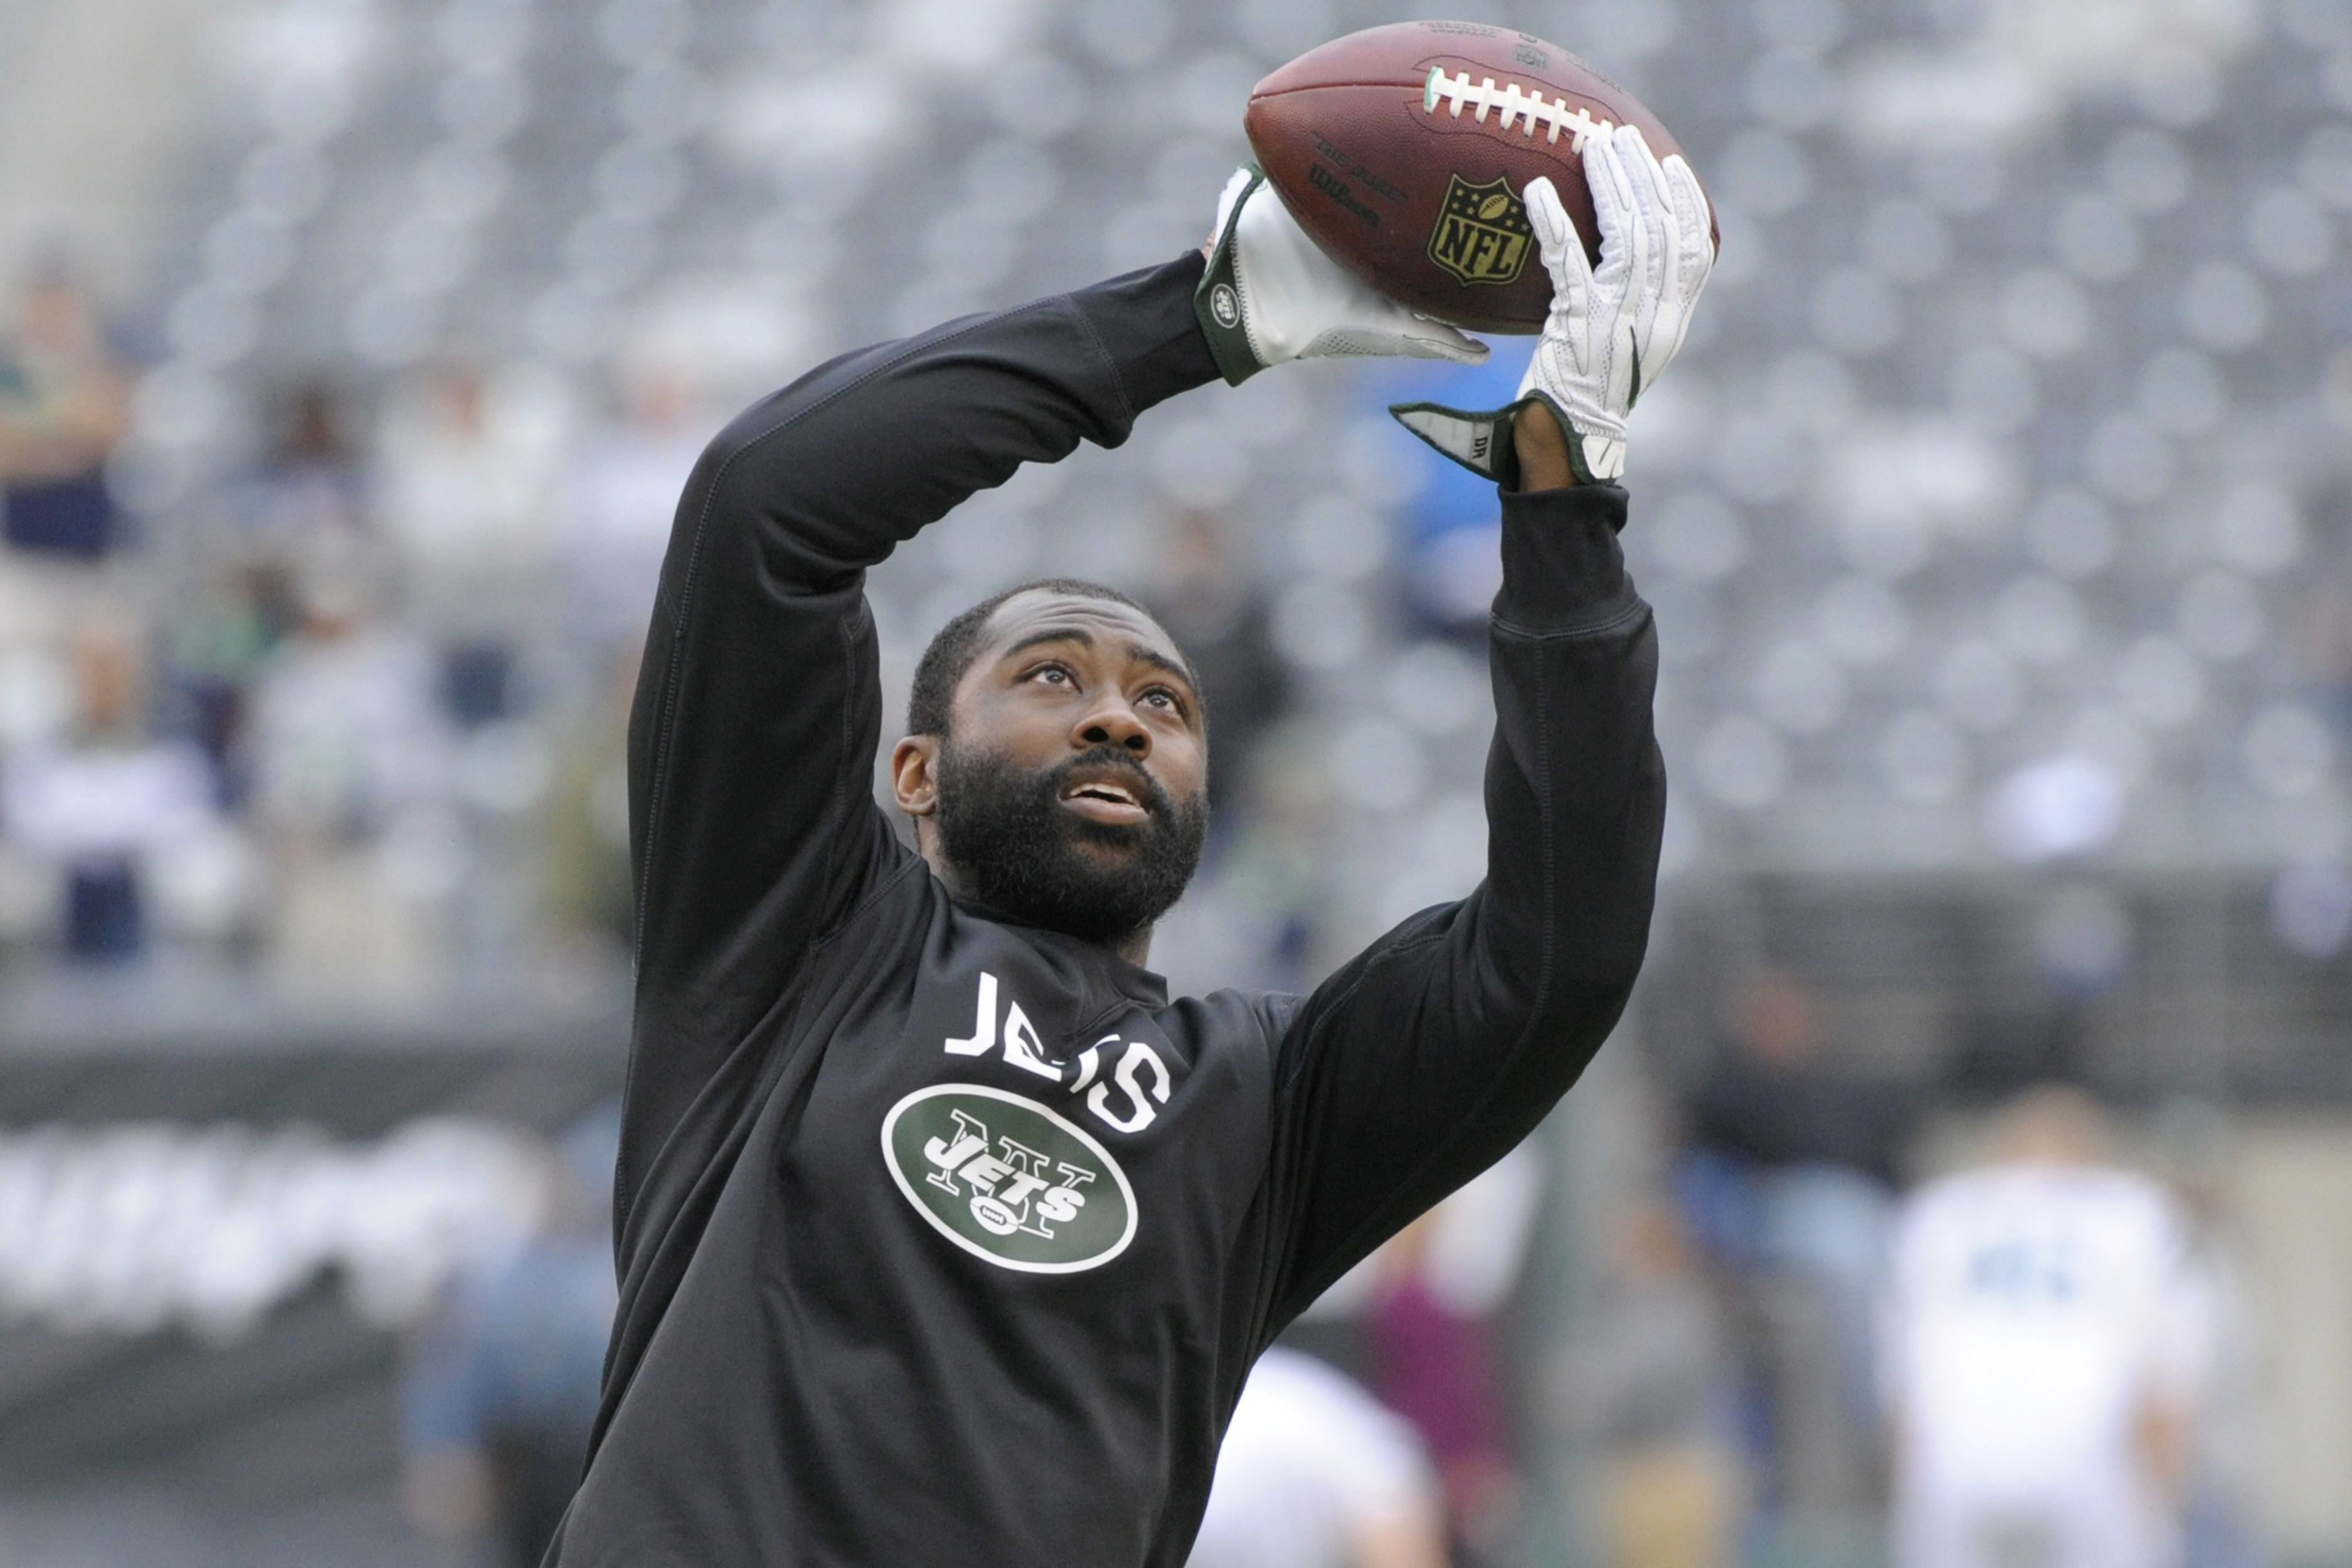 FILE - In this Oct. 2, 2016, file photo, New York Jets' Darrelle Revis warms up before an NFL football game against the Seattle Seahawks, in East Rutherford, N.J. Revis gave his hamstring a workout and came away feeling pretty good about his chances of pl